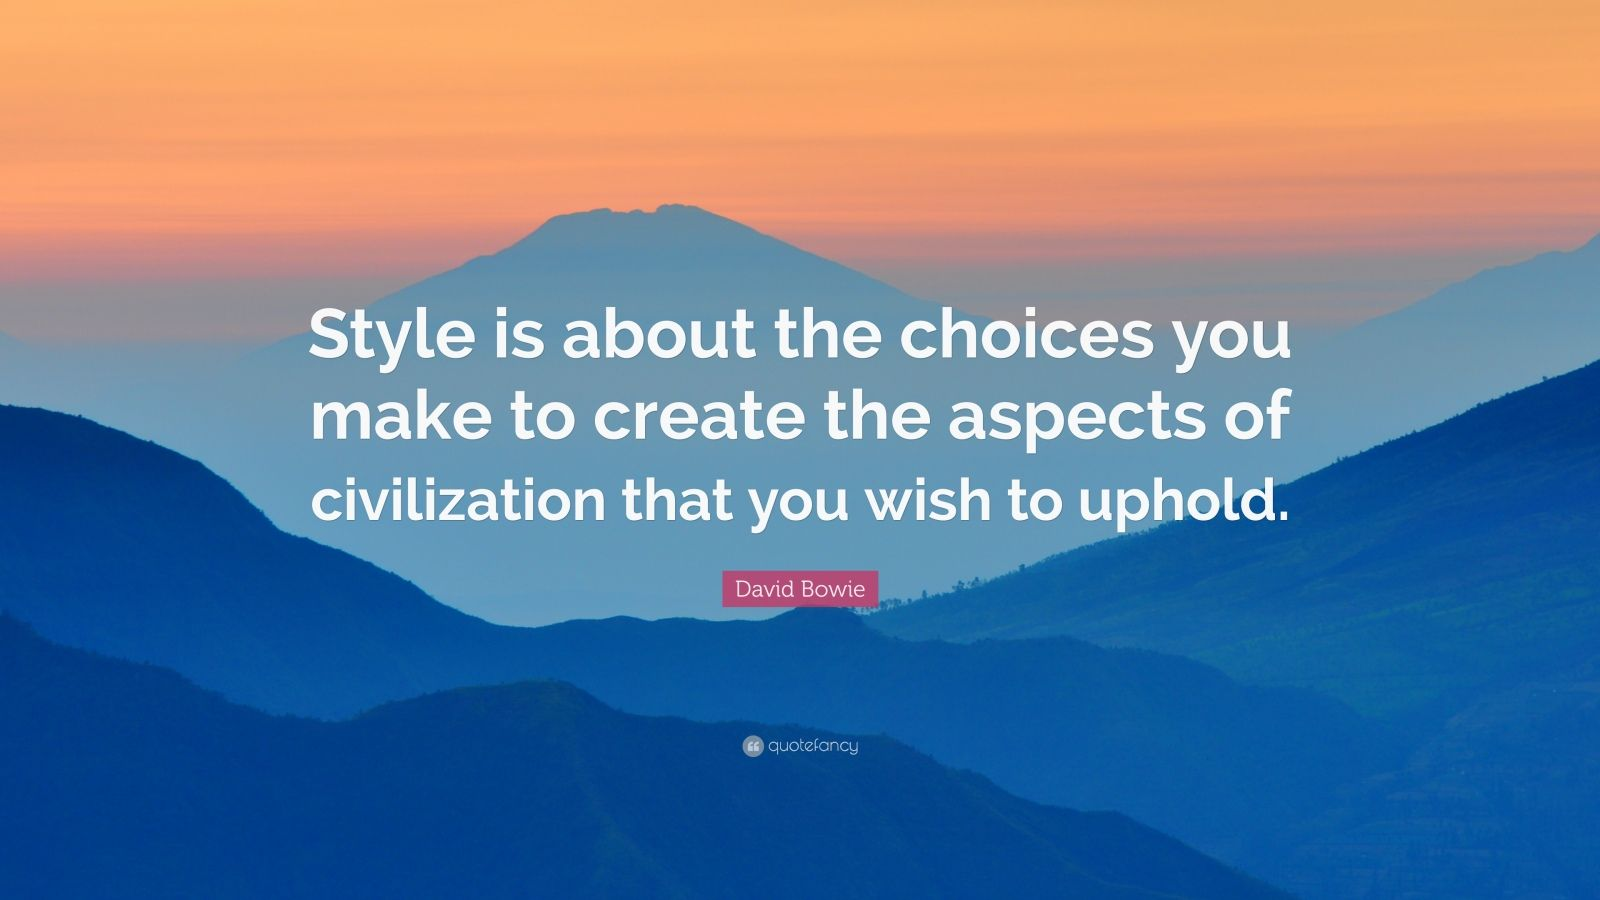 """David Bowie Quote: """"Style is about the choices you make to create the aspects of civilization that you wish to uphold."""""""